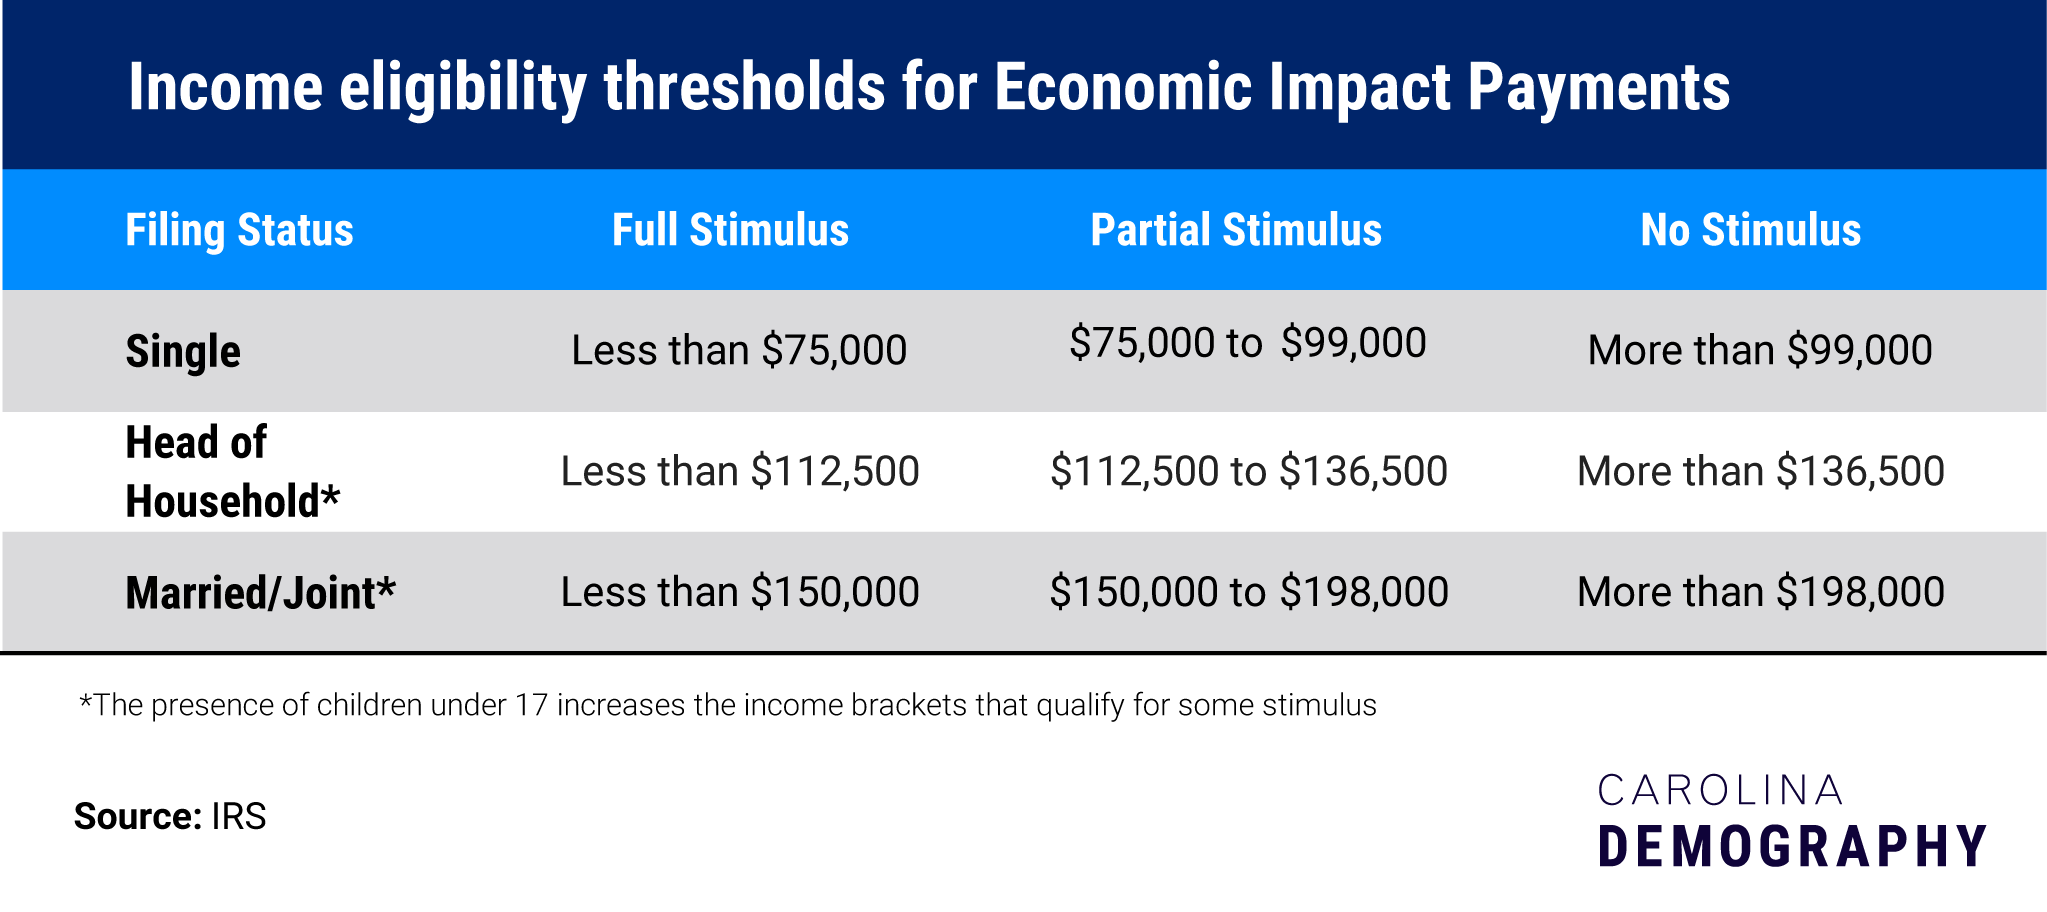 Table Title: Income eligibility thresholds for Economic Impact Payments Filing Status Full Stimulus Partial Stimulus No Stimulus Single Less than $75,000 $75,000 to $99,000 More than $99,000 Head of Household* Less than $112,500 $112,500 to $136,500 More than $136,500 Married/Joint* Less than $150,000 $150,000 to $198,000 More than $198,000 *The presence of children under 17 increases the income brackets that qualify for some stimulus